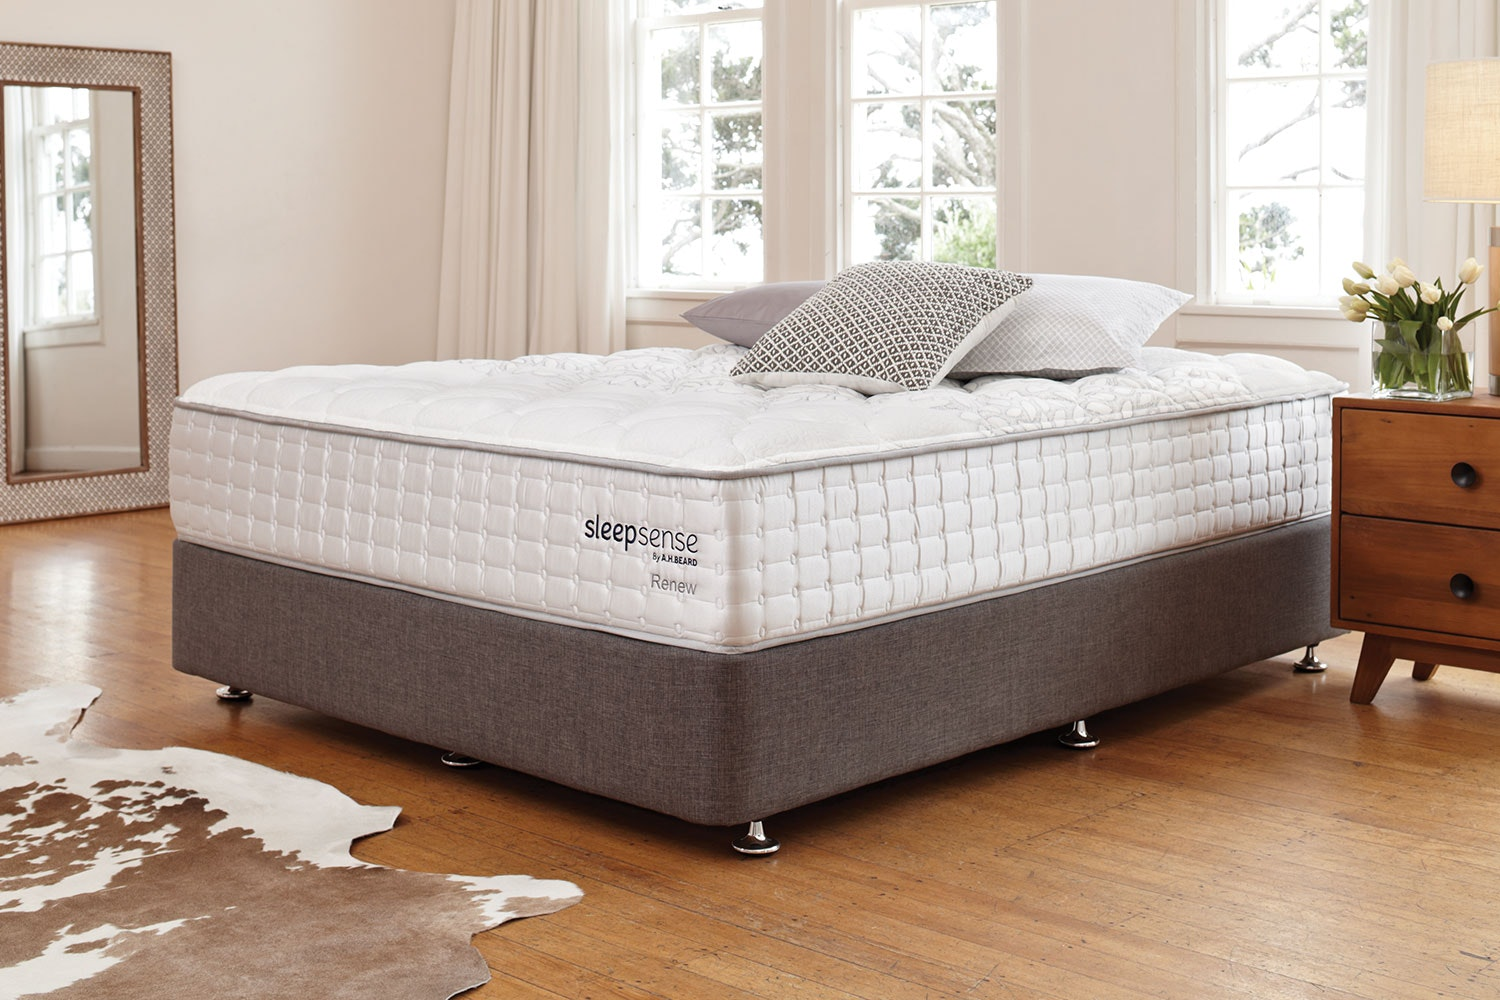 Renew Long Single Bed by Sleepsense